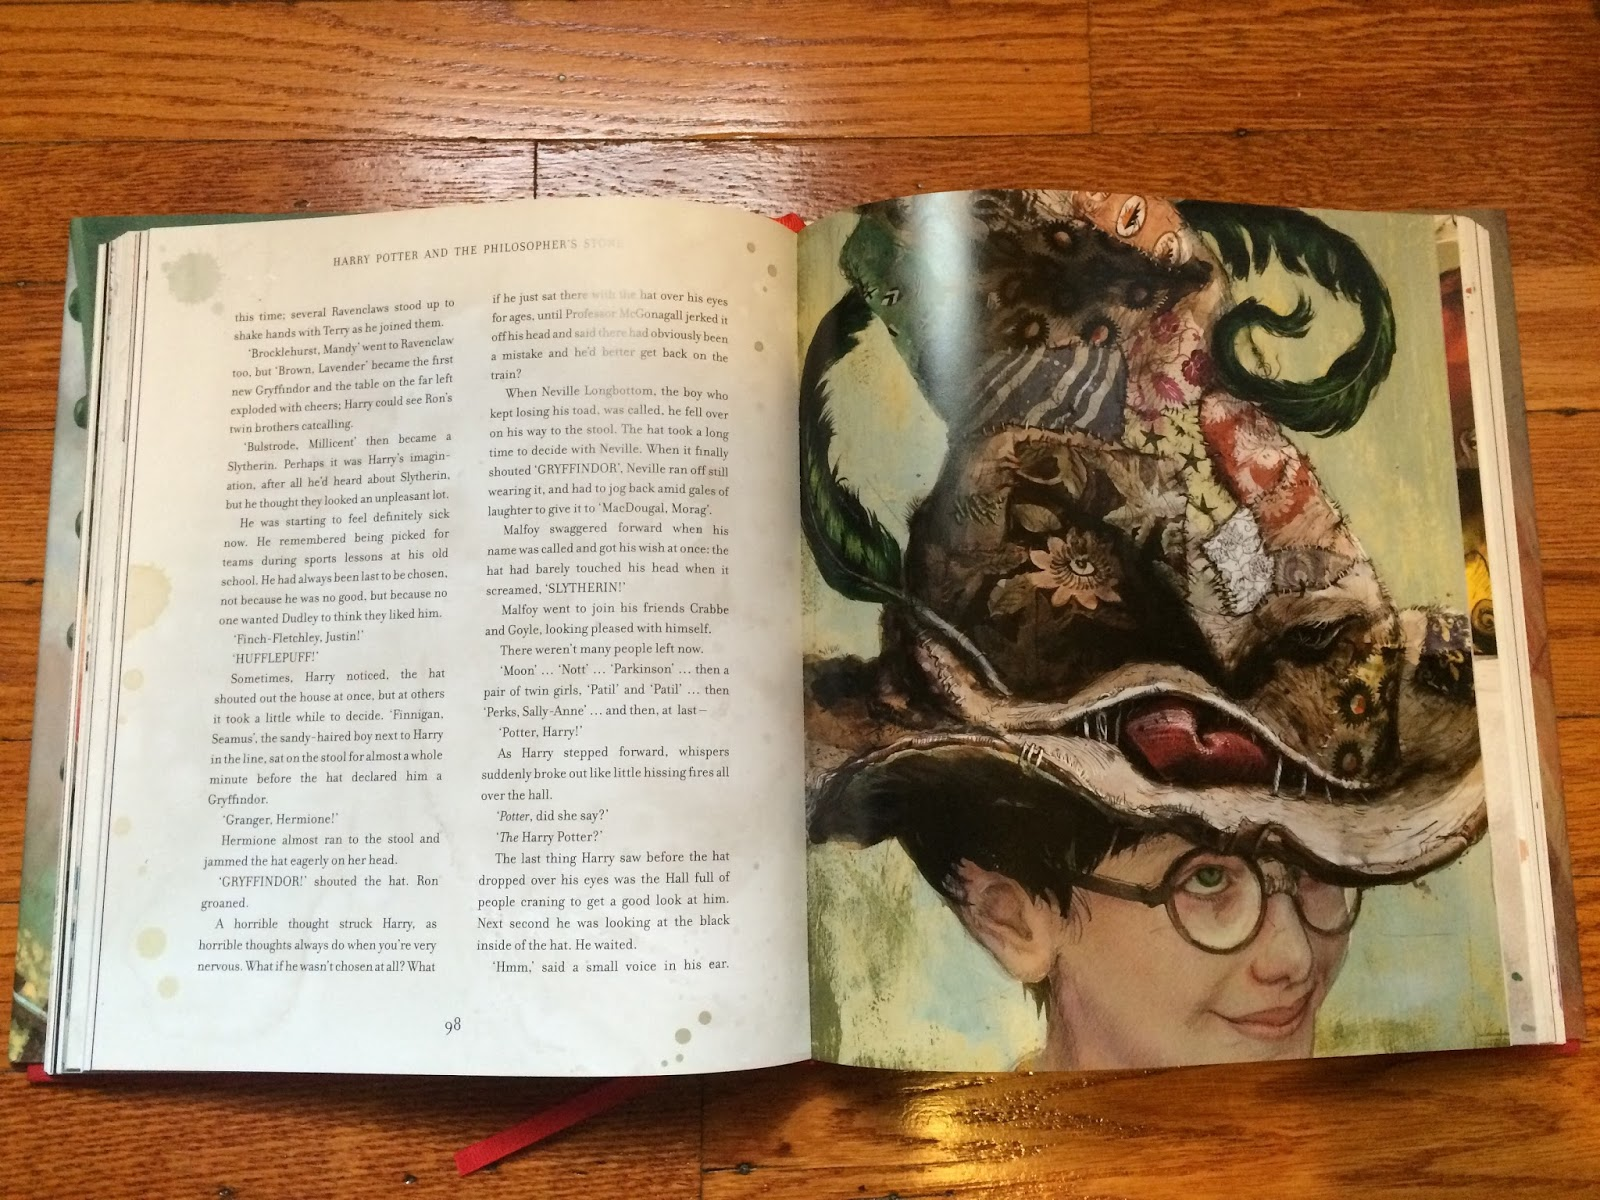 A splendid messy life go buy now harry potter and the i just cant even imagine the time it took the illustrator jim kay to complete this work if jim kay sounds familiar he also did a monster calls by solutioingenieria Choice Image